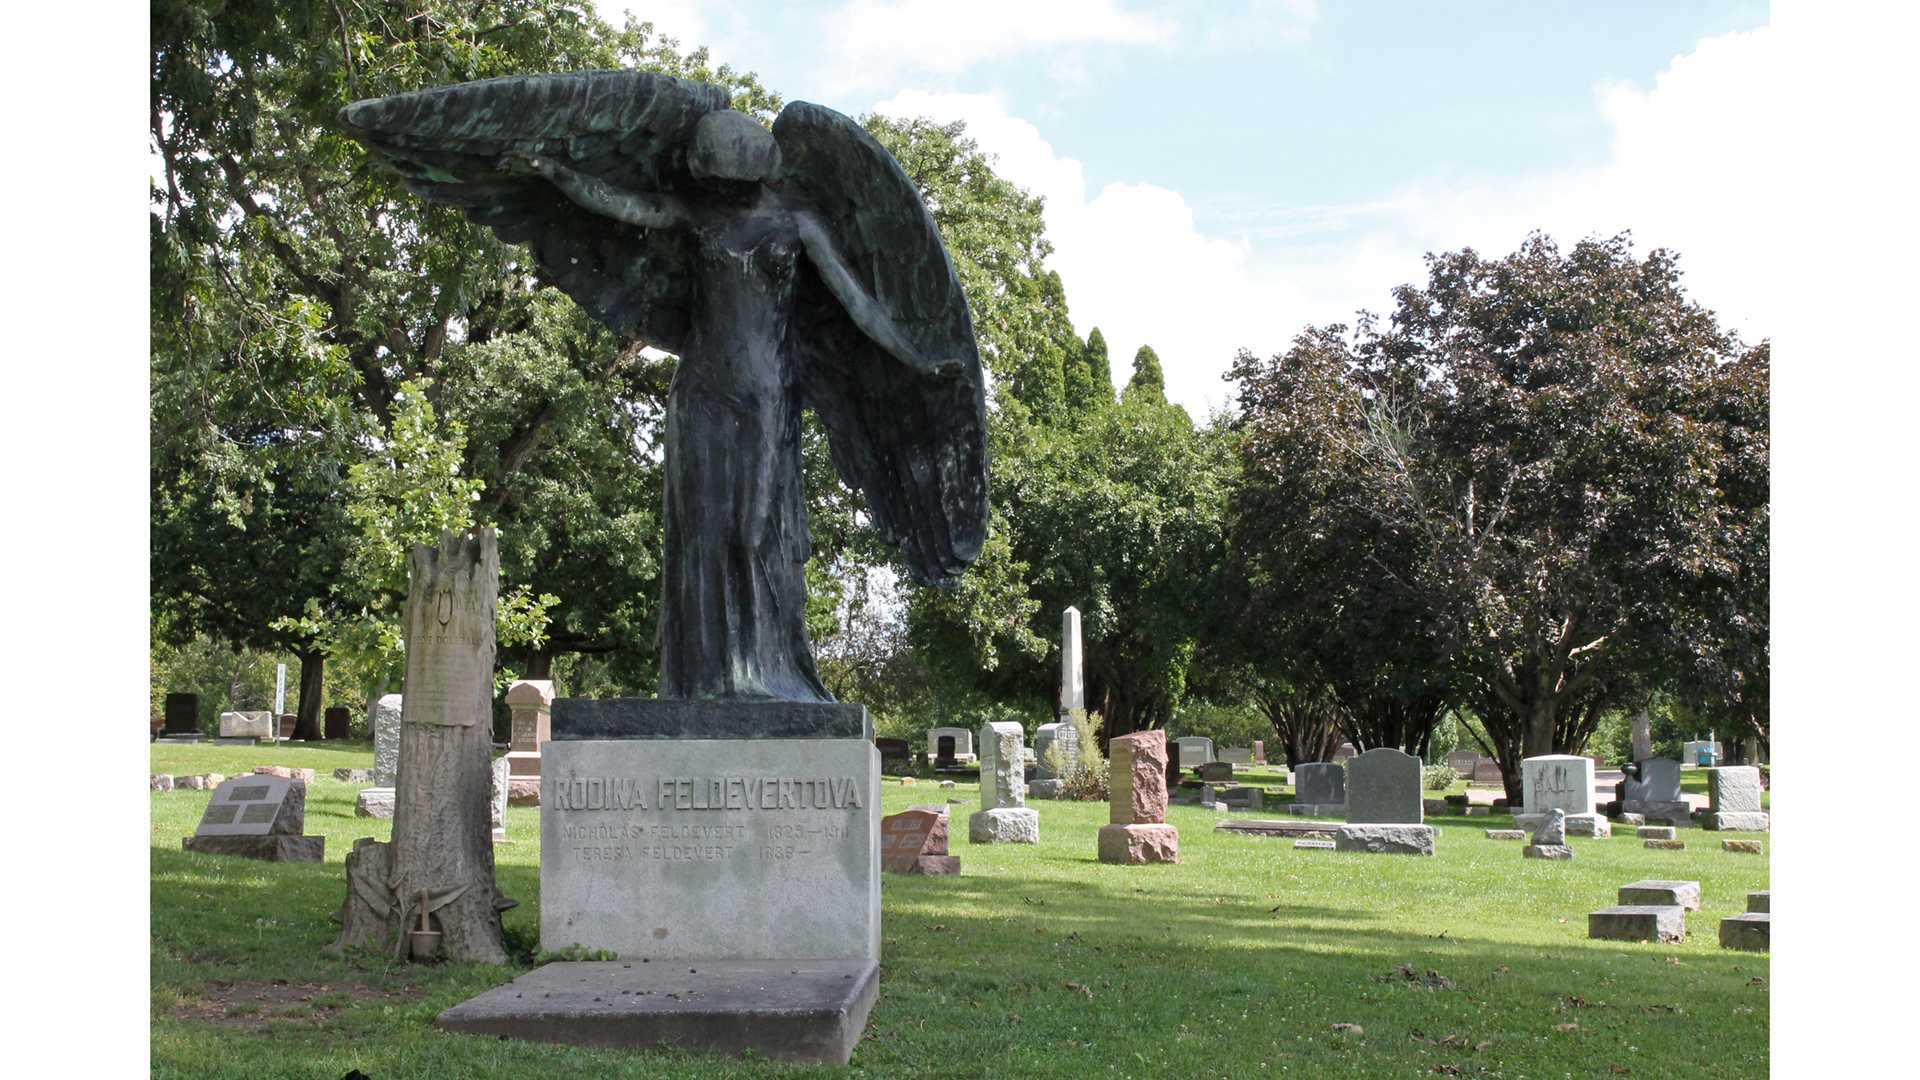 The black angel is photographed at Oakland Cemetery in Iowa City on Monday, September 7, 2015. The black angel is an eight and a half foot tall burial monument built for the Feldevert family in 1912. Since then, it has been the source of many legends in Iowa City; most of which are connected to the mysterious change in color that the angel took, turning from a golden bronze to black. (The Daily Iowan/McCall Radavich)